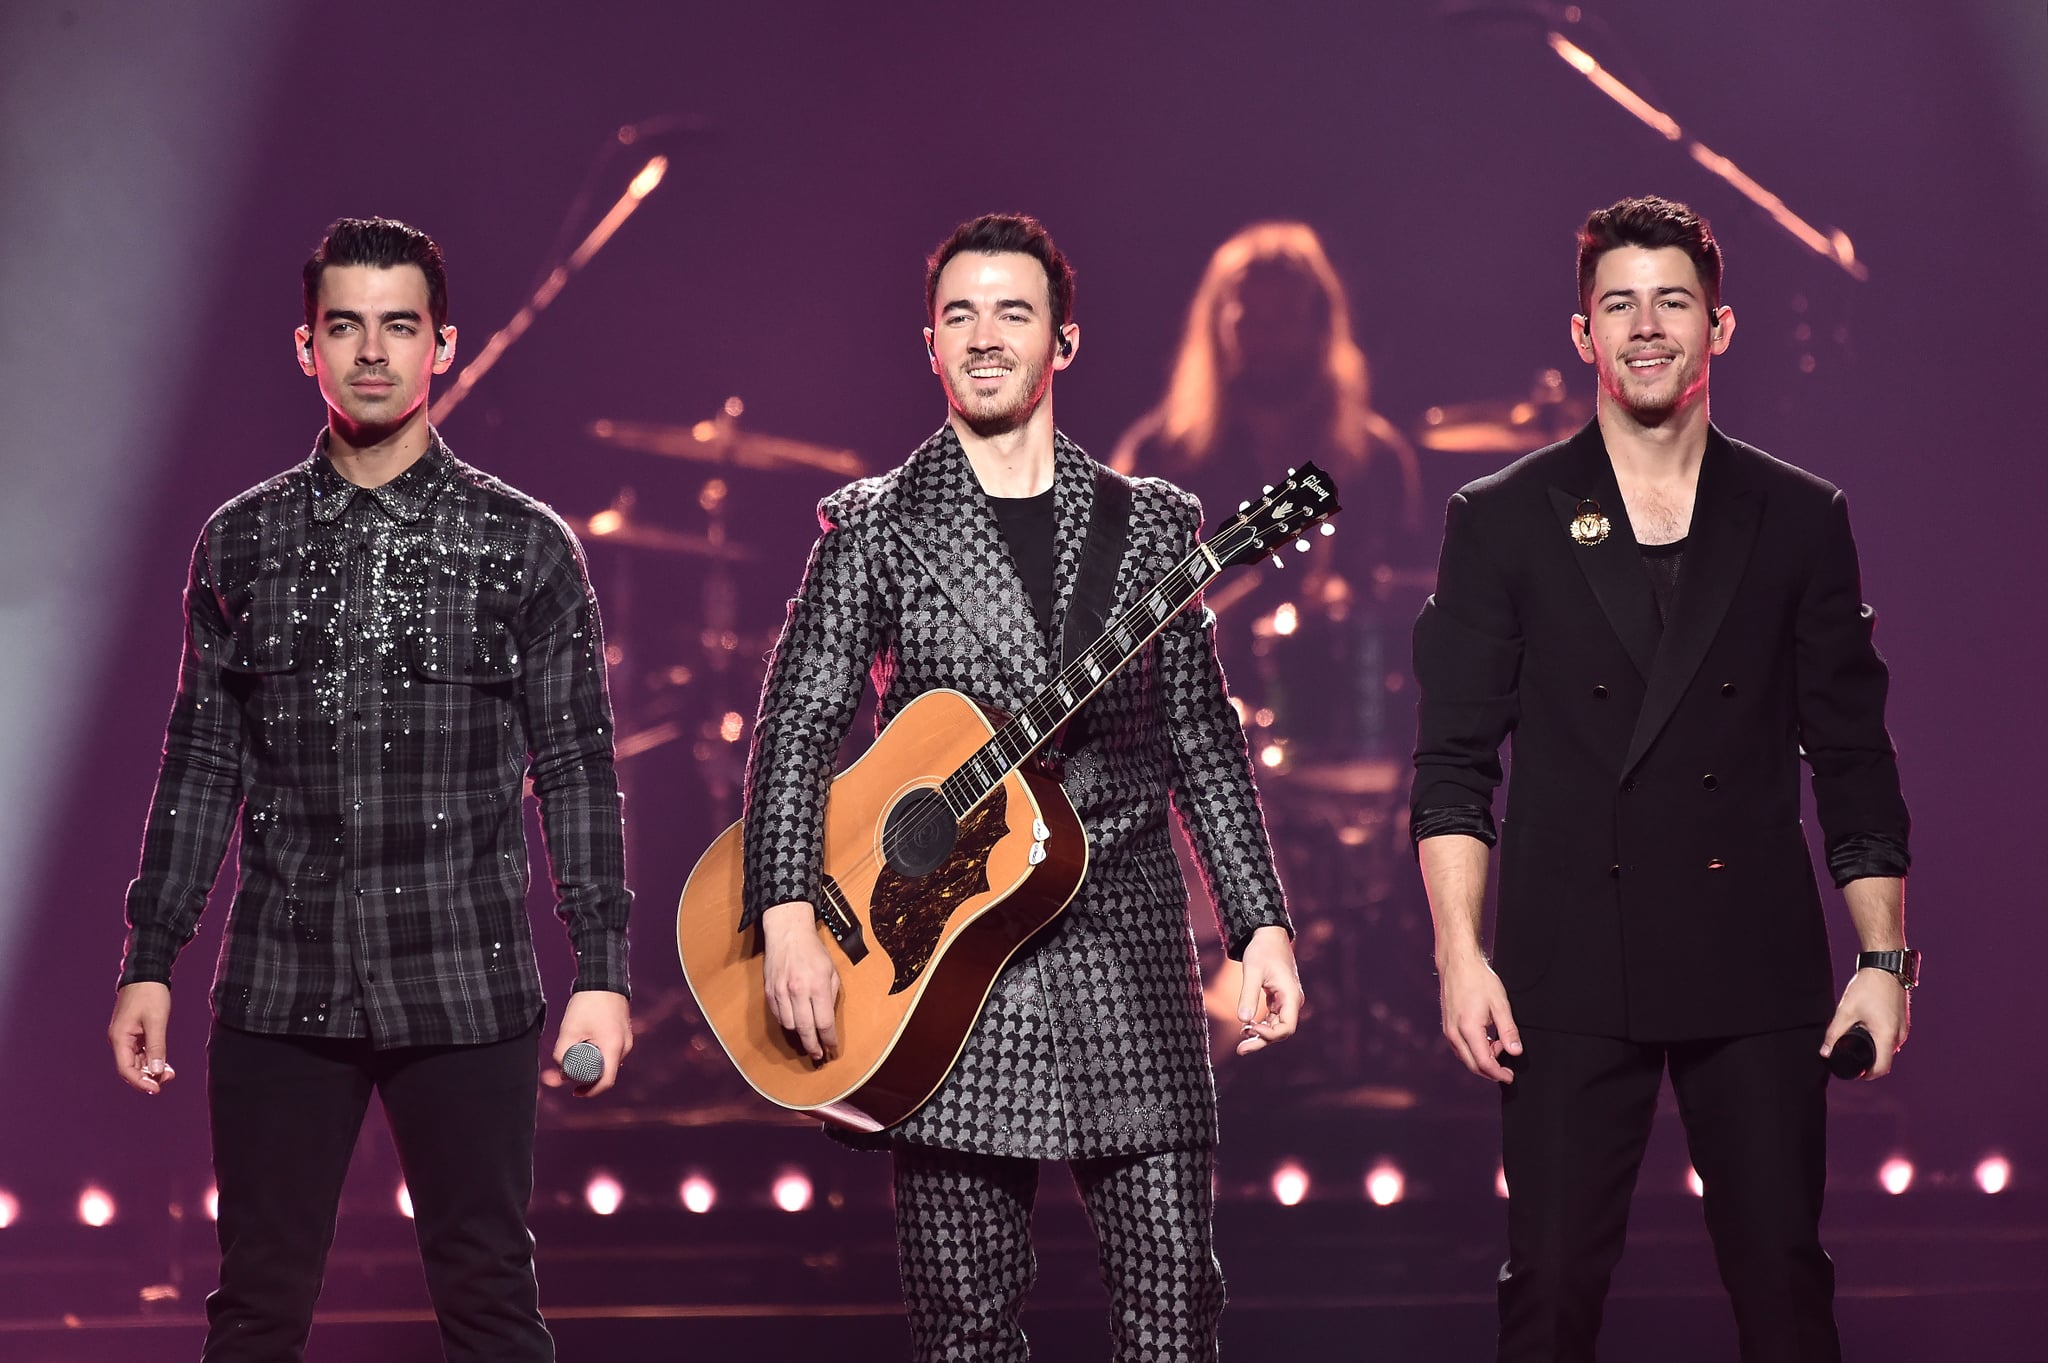 NEW YORK, NEW YORK - NOVEMBER 23: Joe Jonas, Kevin Jonas, and Nick Jonas of The Jonas Brothers perform at Barclays Center on November 23, 2019 in New York City. (Photo by Steven Ferdman/Getty Images)